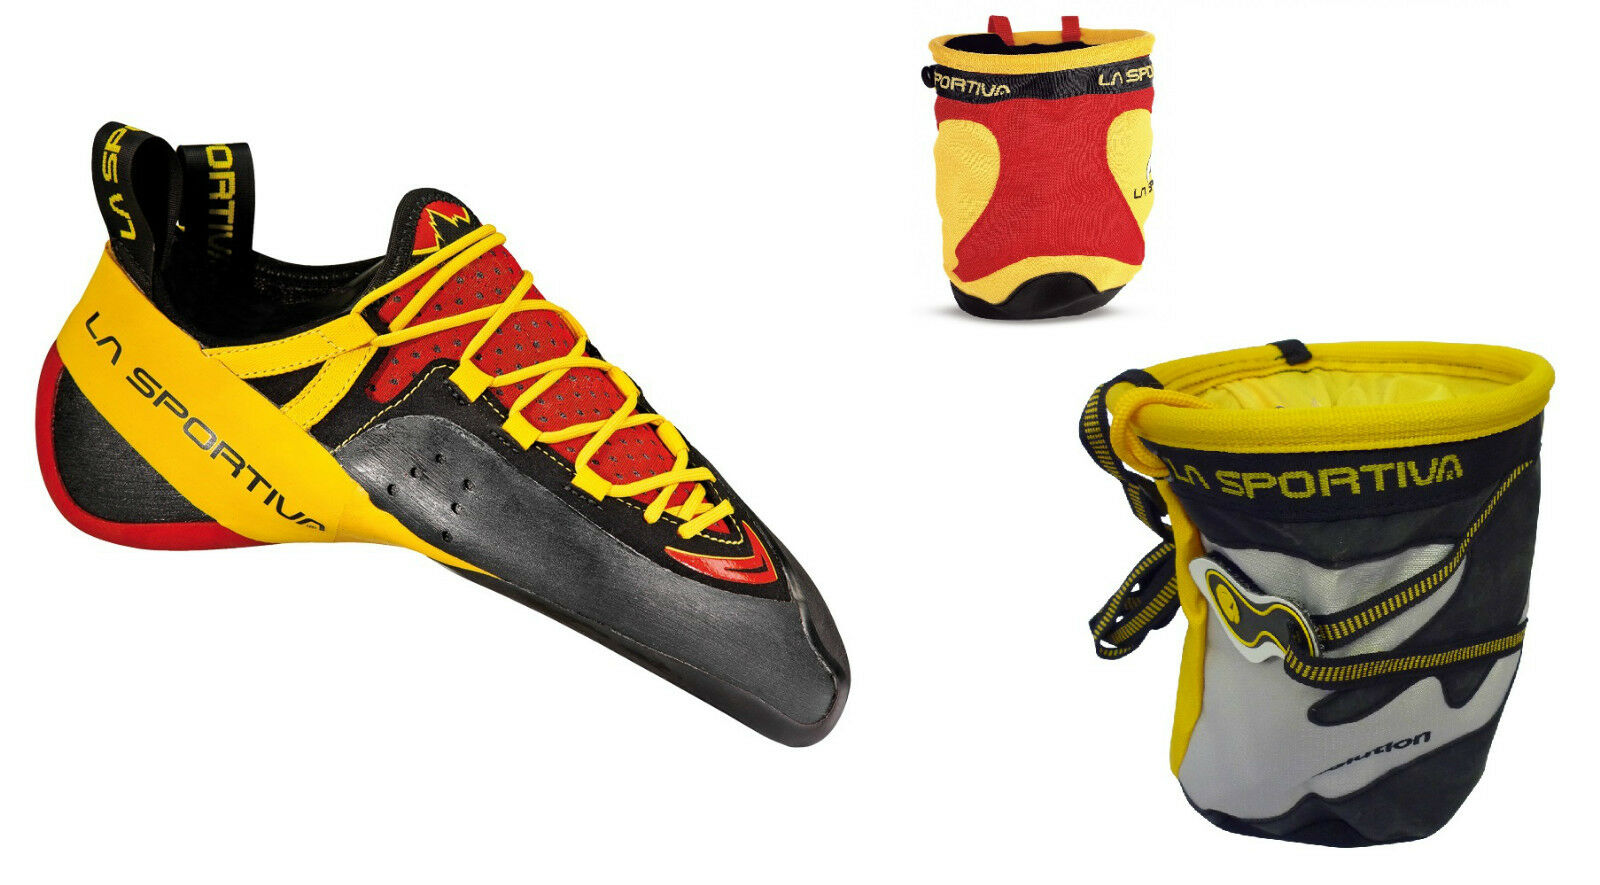 LA SPORTIVA GENIUS climbing shoes  - Ask me for your size